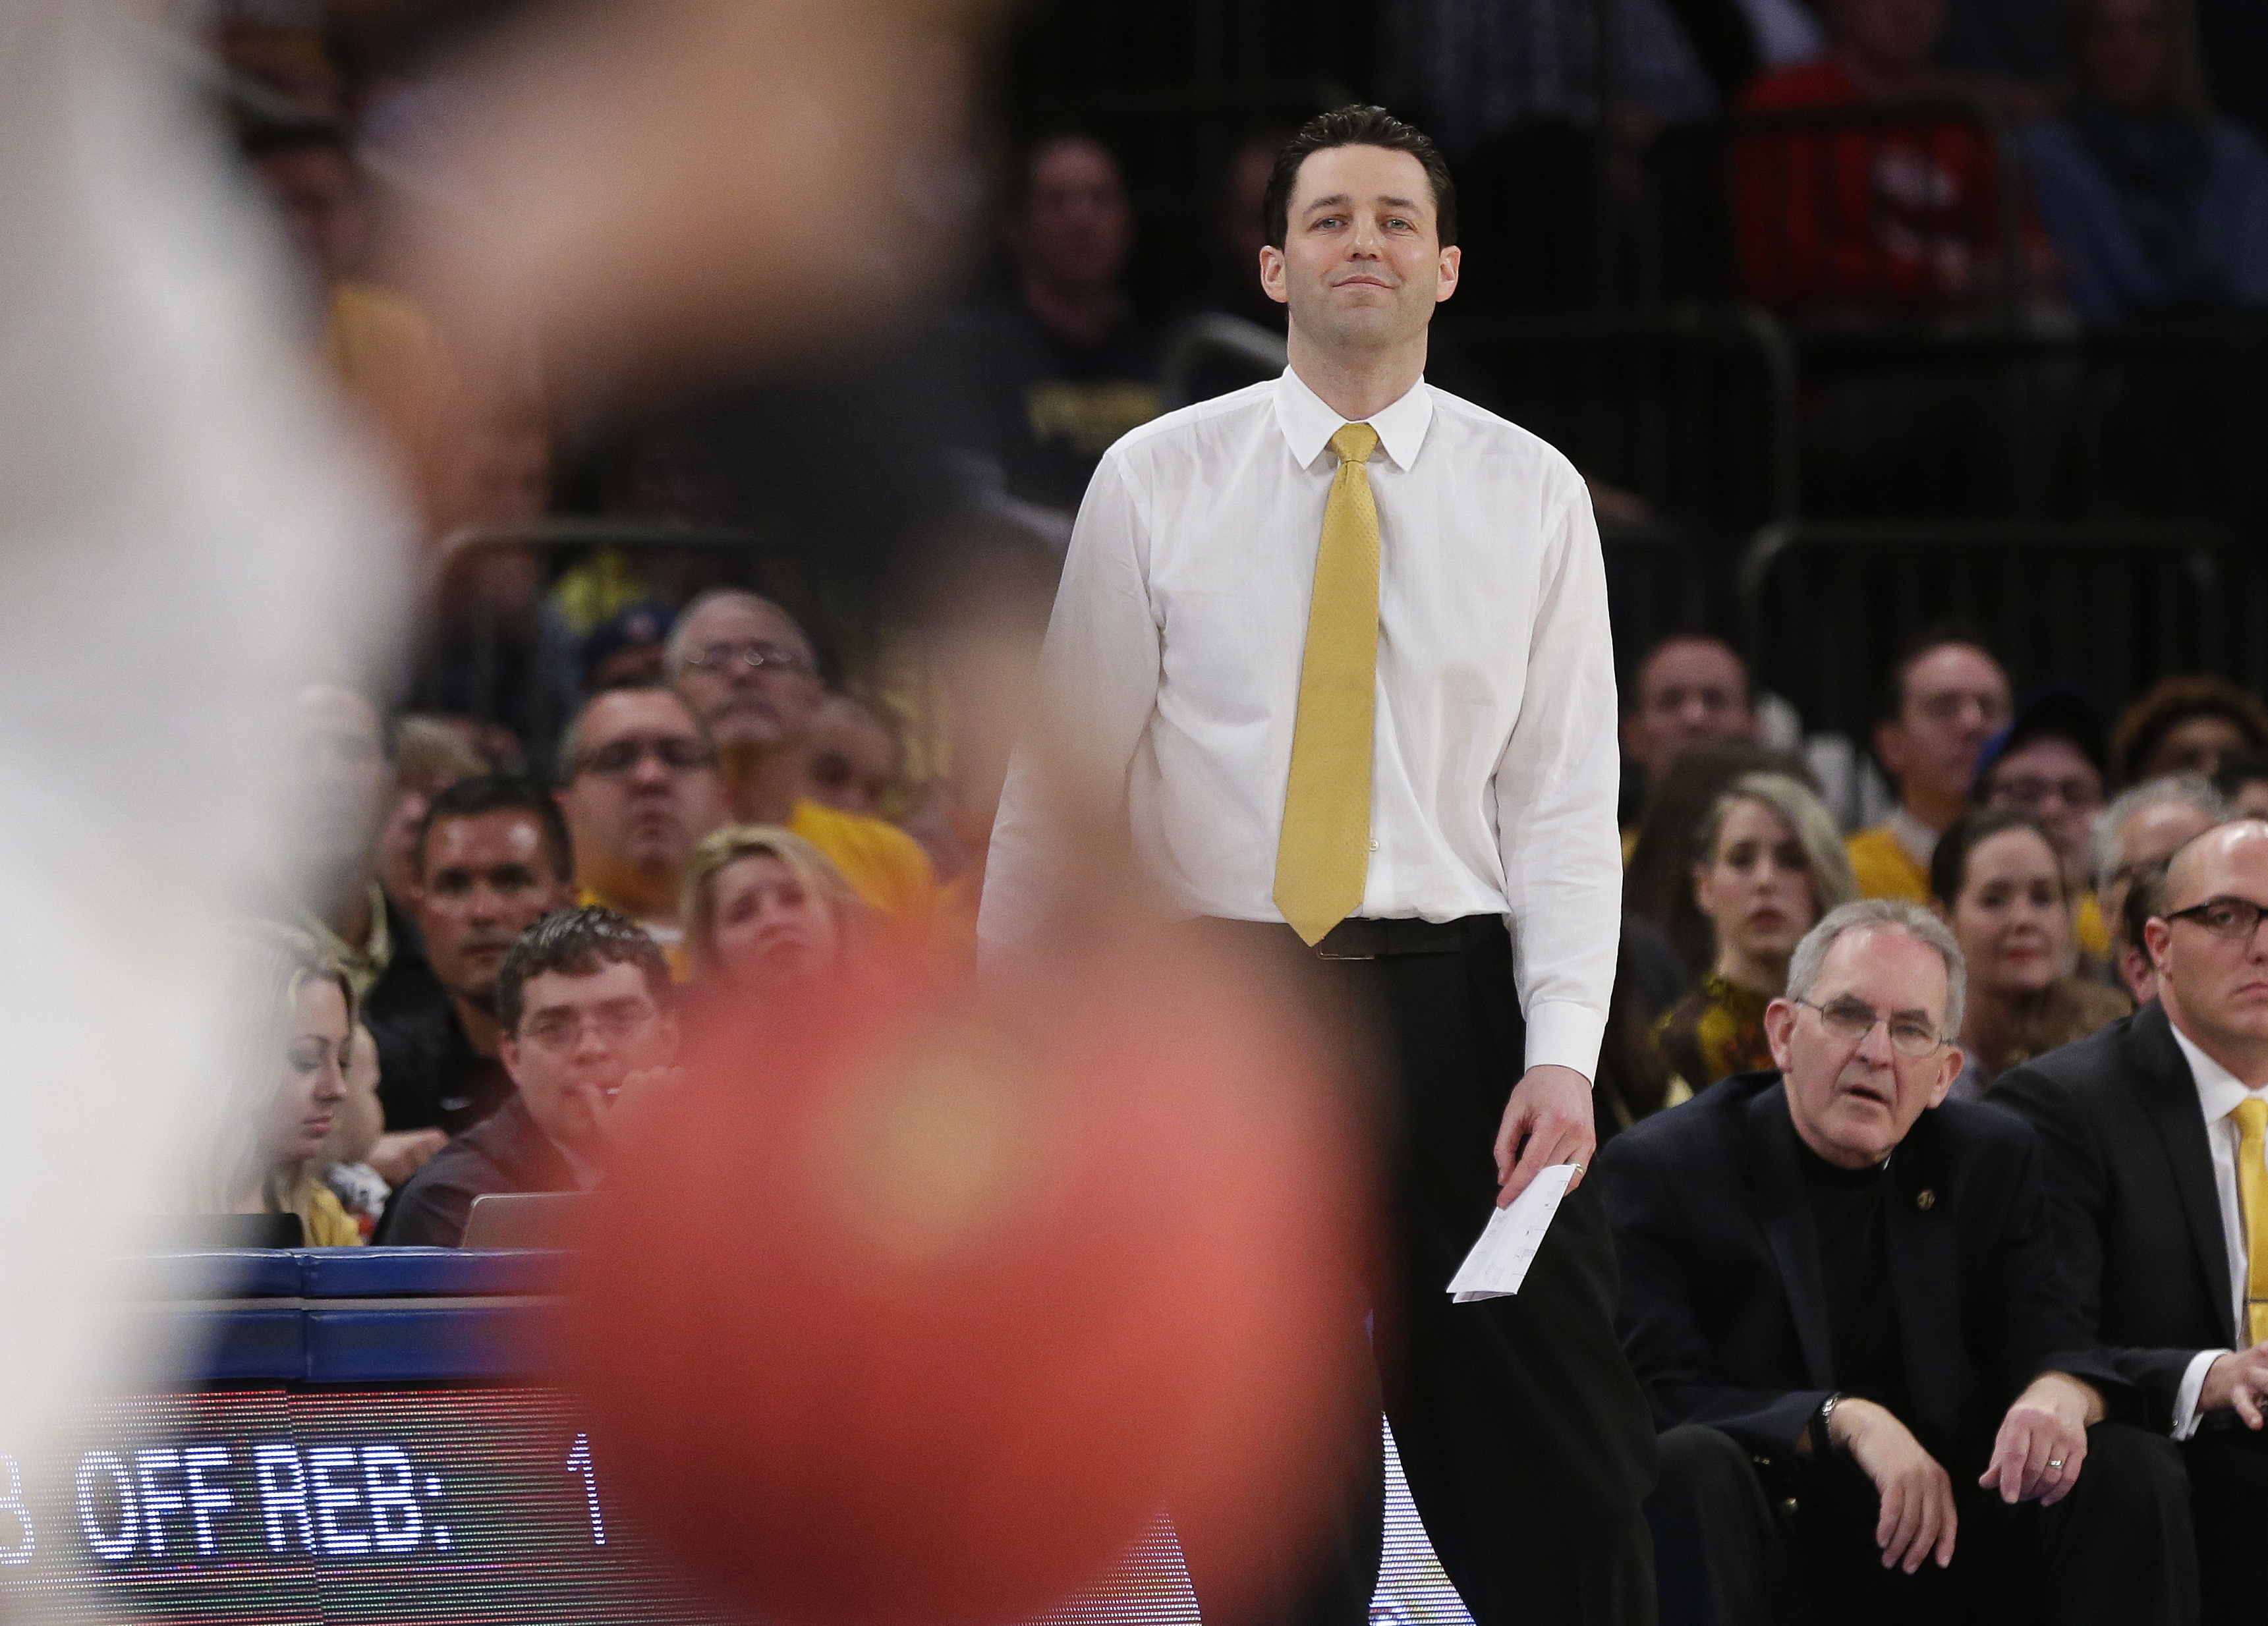 Valparaiso coach Bryce Drew watches his team play during the first half of an NCAA college basketball game against George Washington in the final of the NIT, Thursday, March 31, 2016, in New York. (AP Photo/Frank Franklin II)